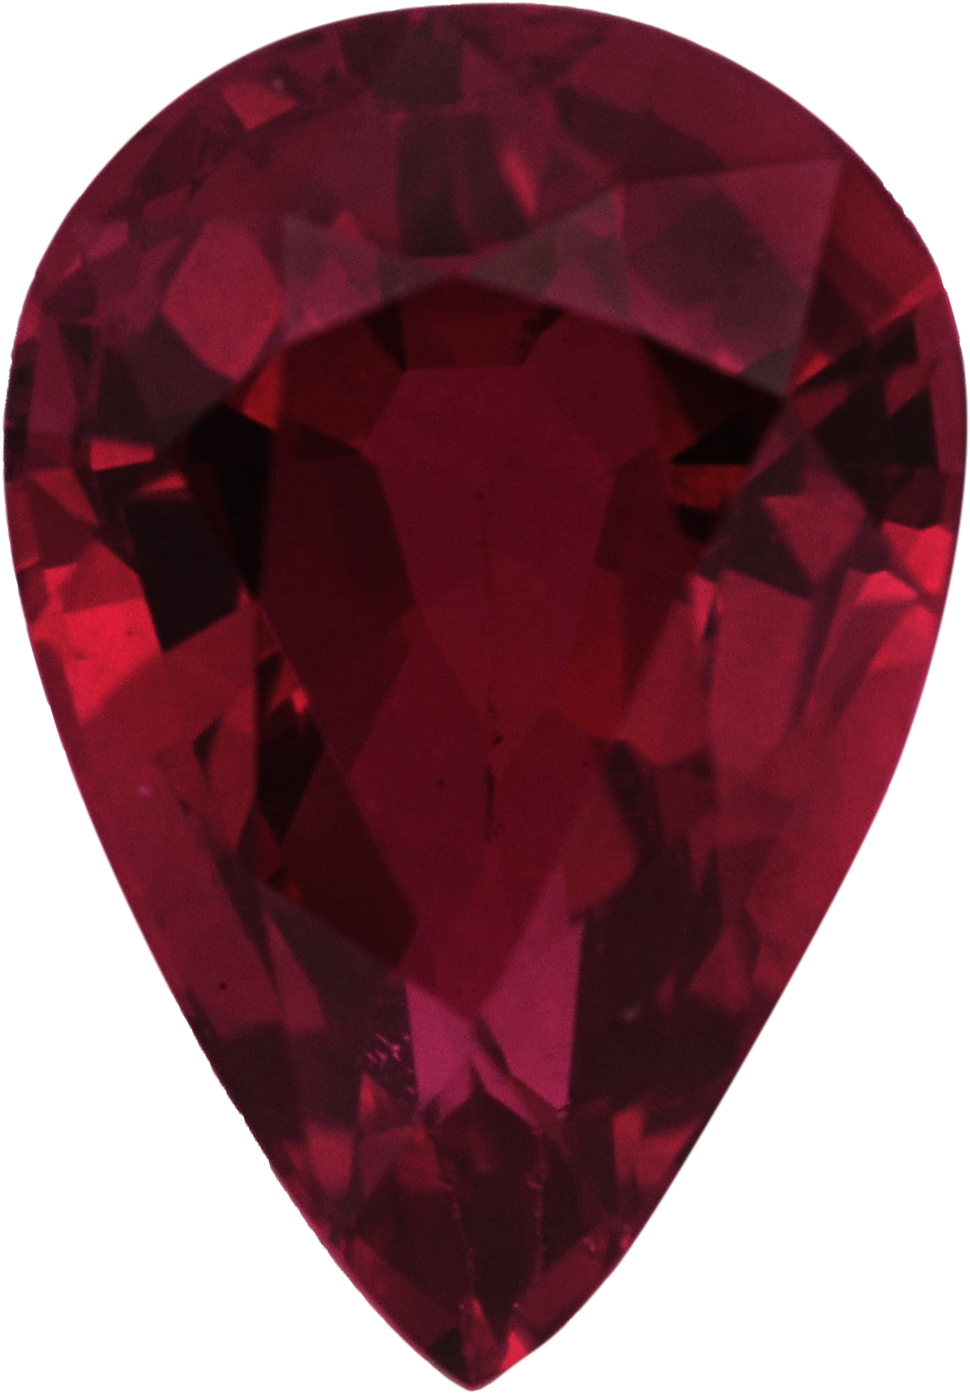 Beautiful Loose Ruby Gem in Pear Shape, Red Color, 7.23 x 5.05 mm, 1.08 carats